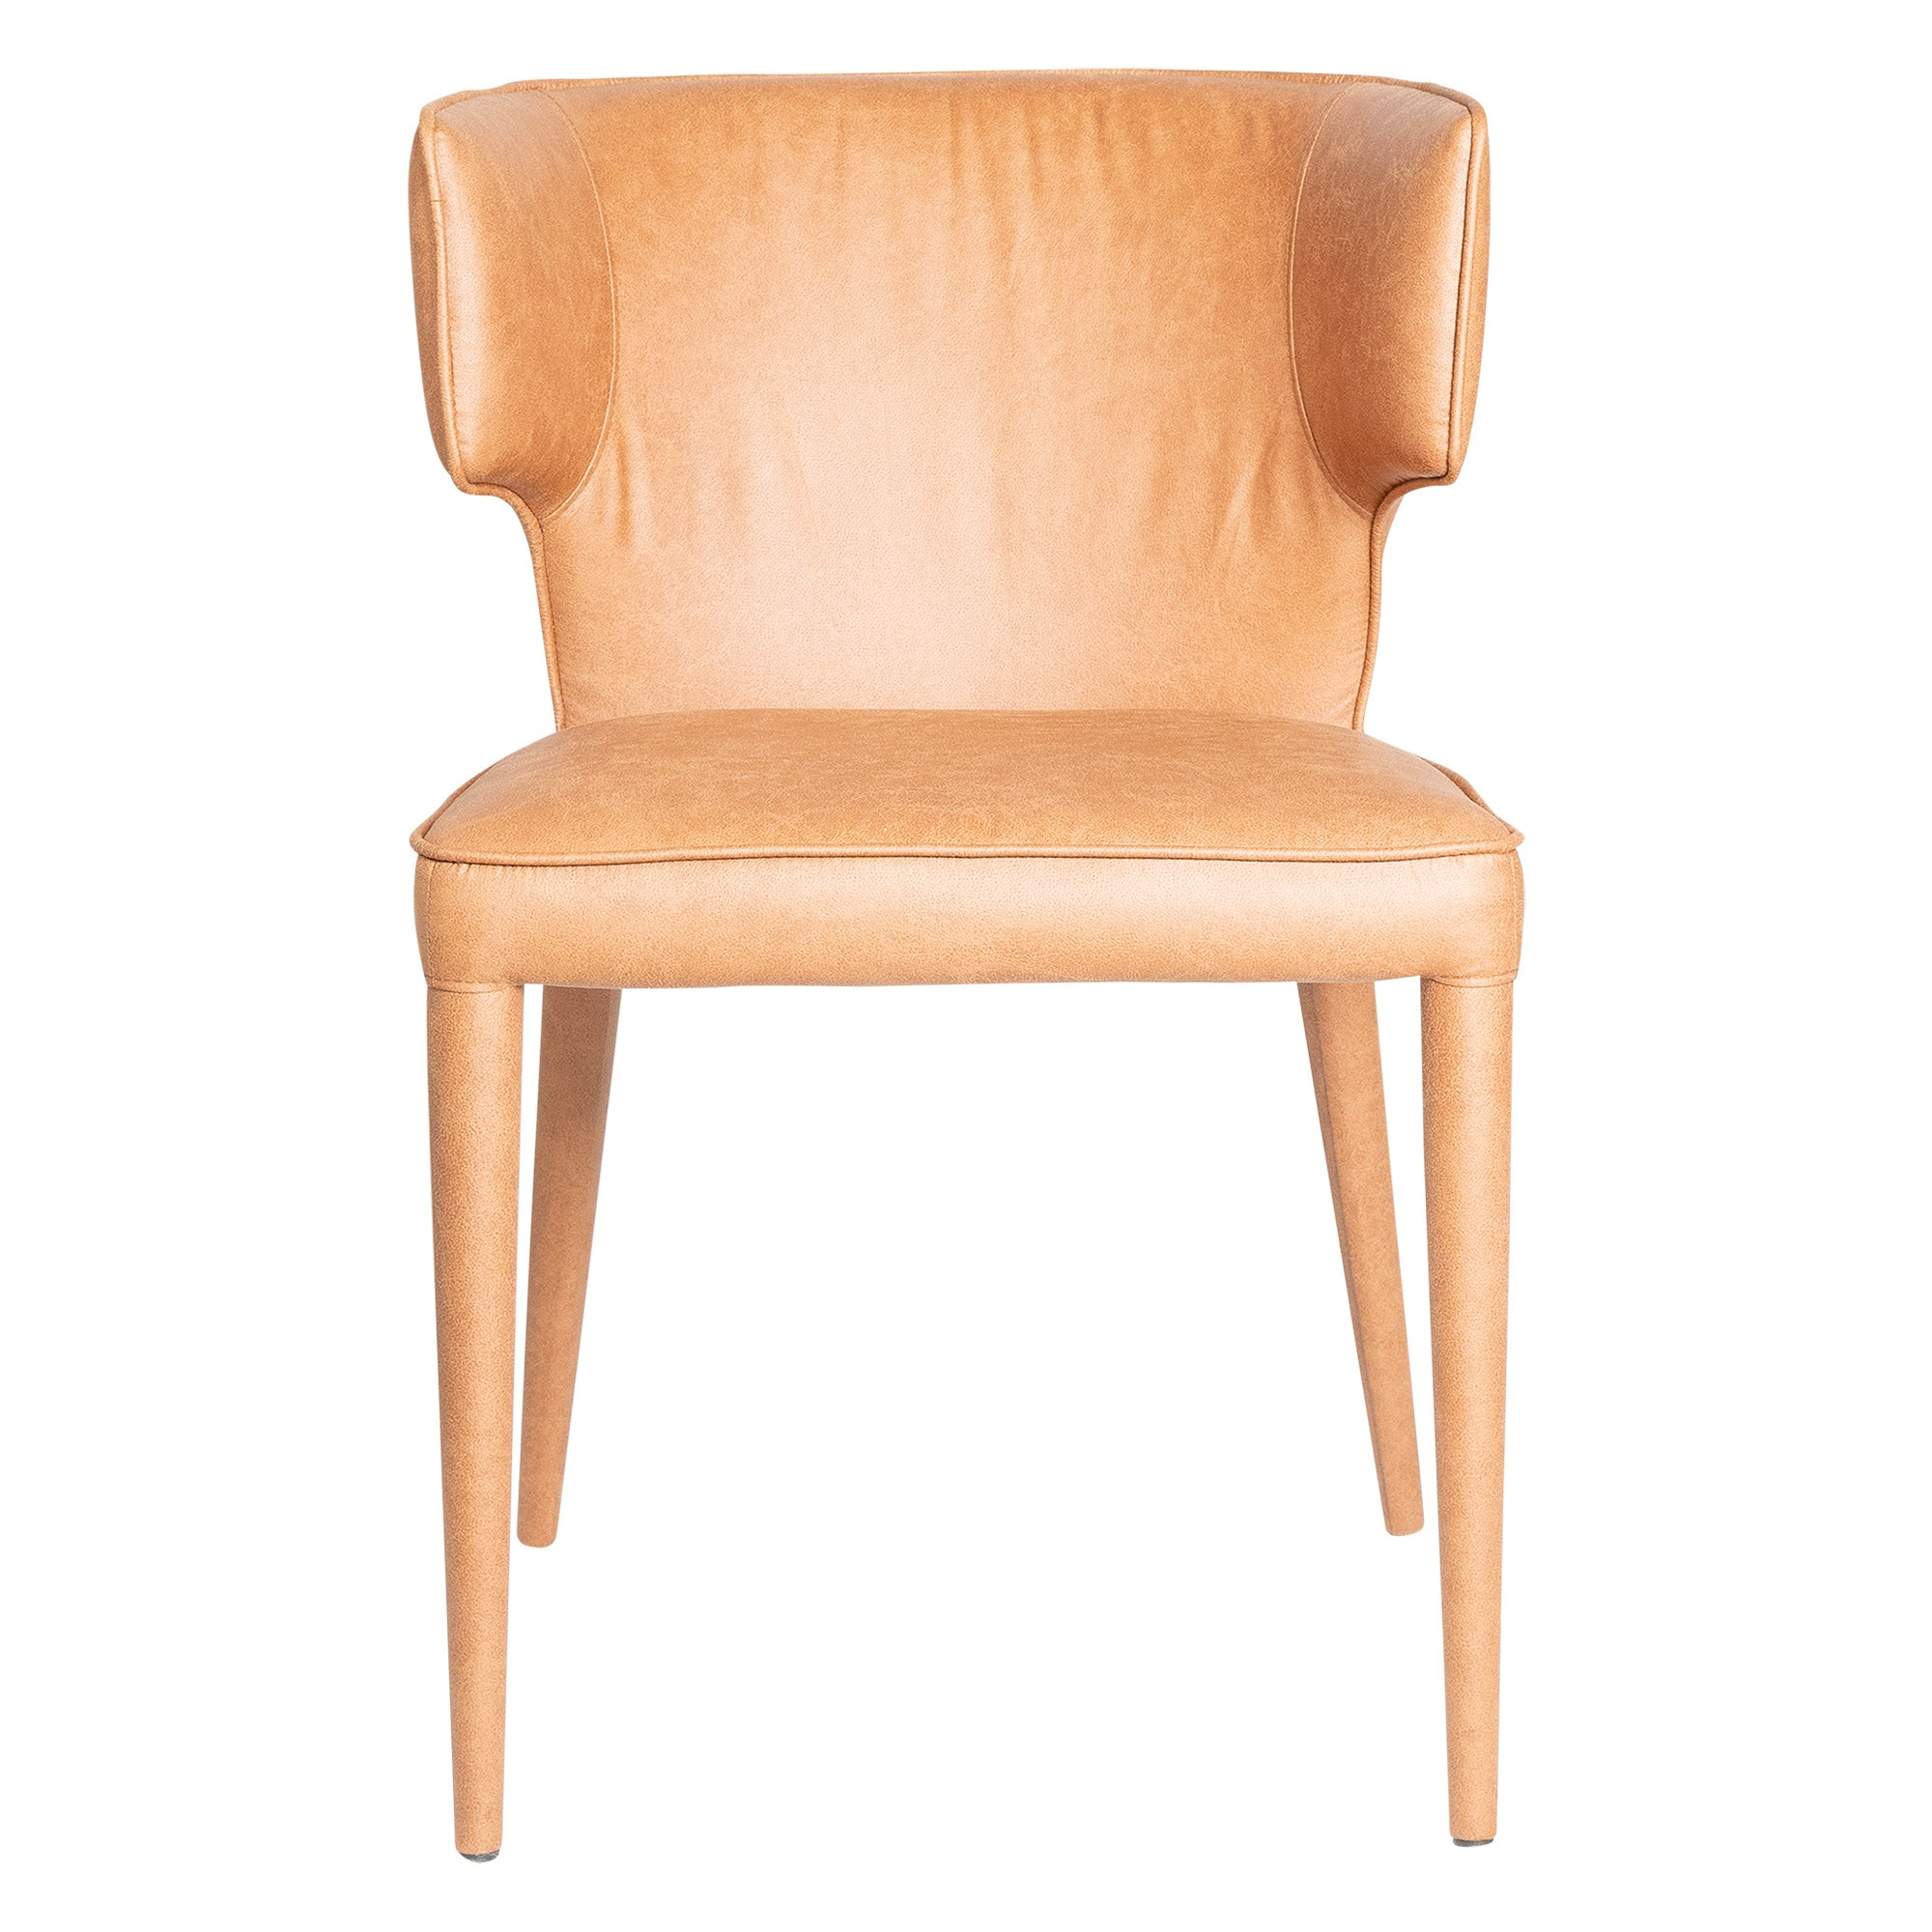 Manzoni Commercial Grade Fabric Dining Chair, Tan